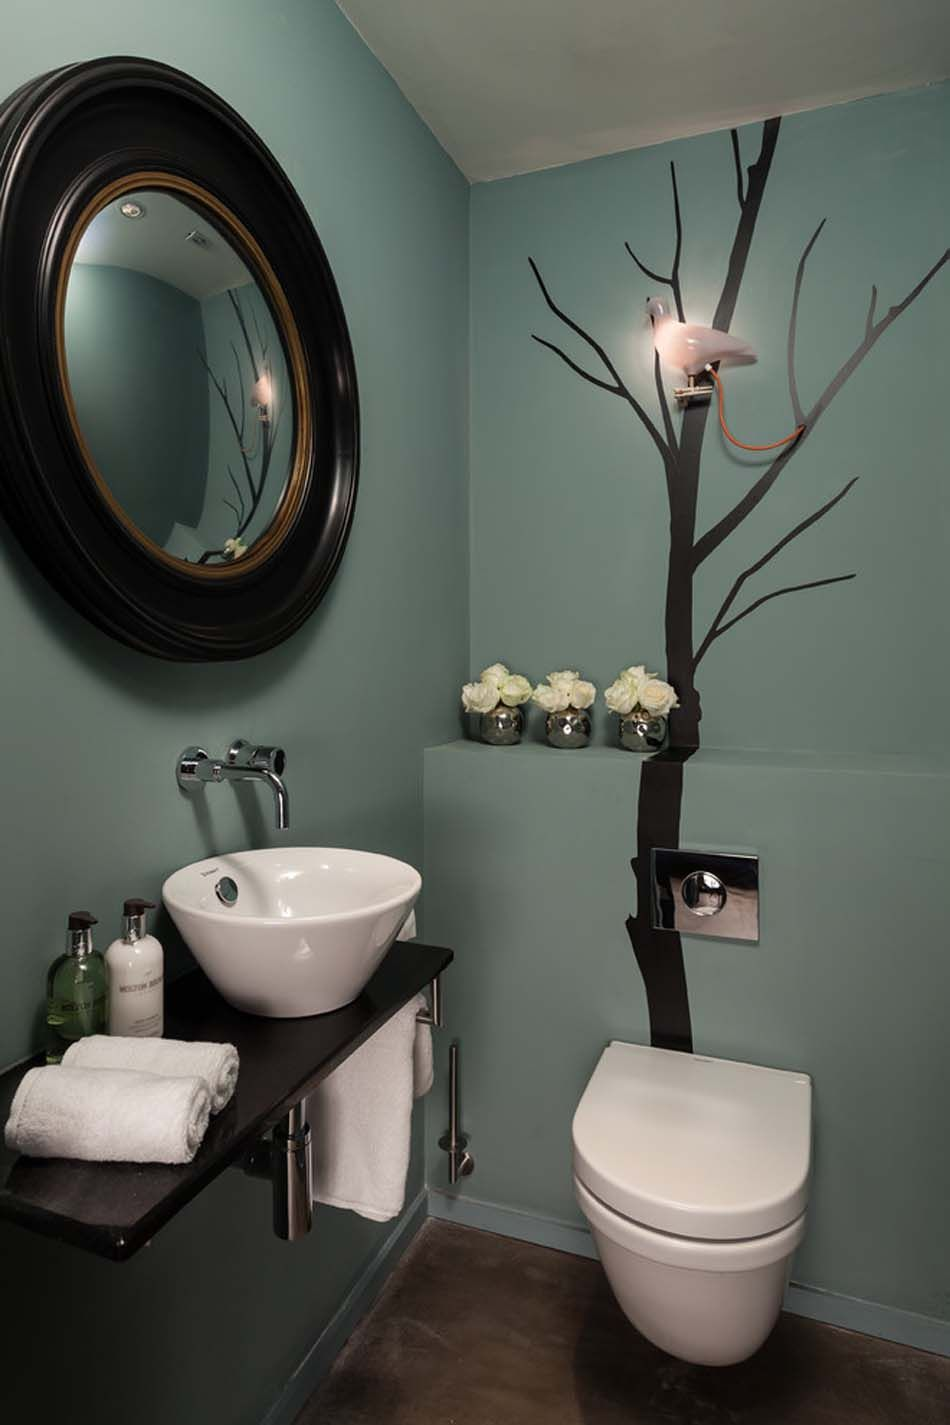 Idees De Decoration Inspirantes Pour Rendre Nos Toilettes Surprenantes Decoration Toilettes Deco Toilettes Originales Deco Toilettes